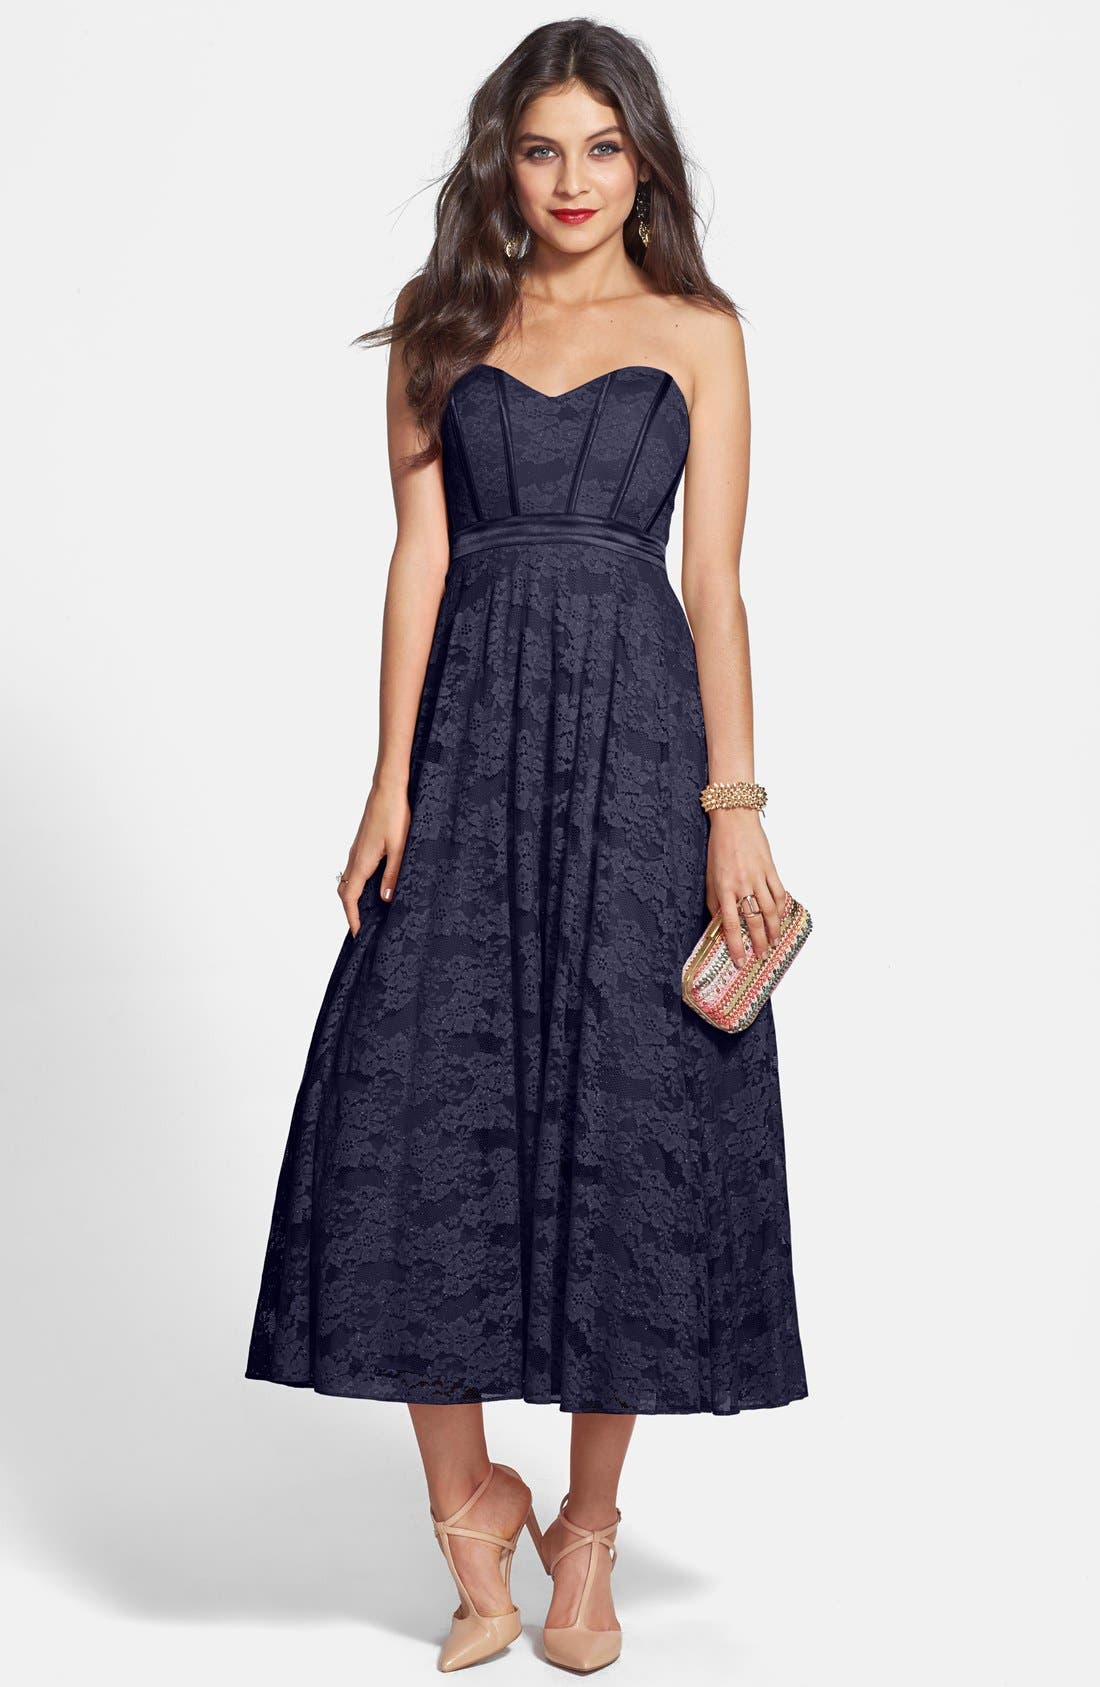 Main Image - Hailey by Adrianna Papell Strapless Glitter Lace Party Dress